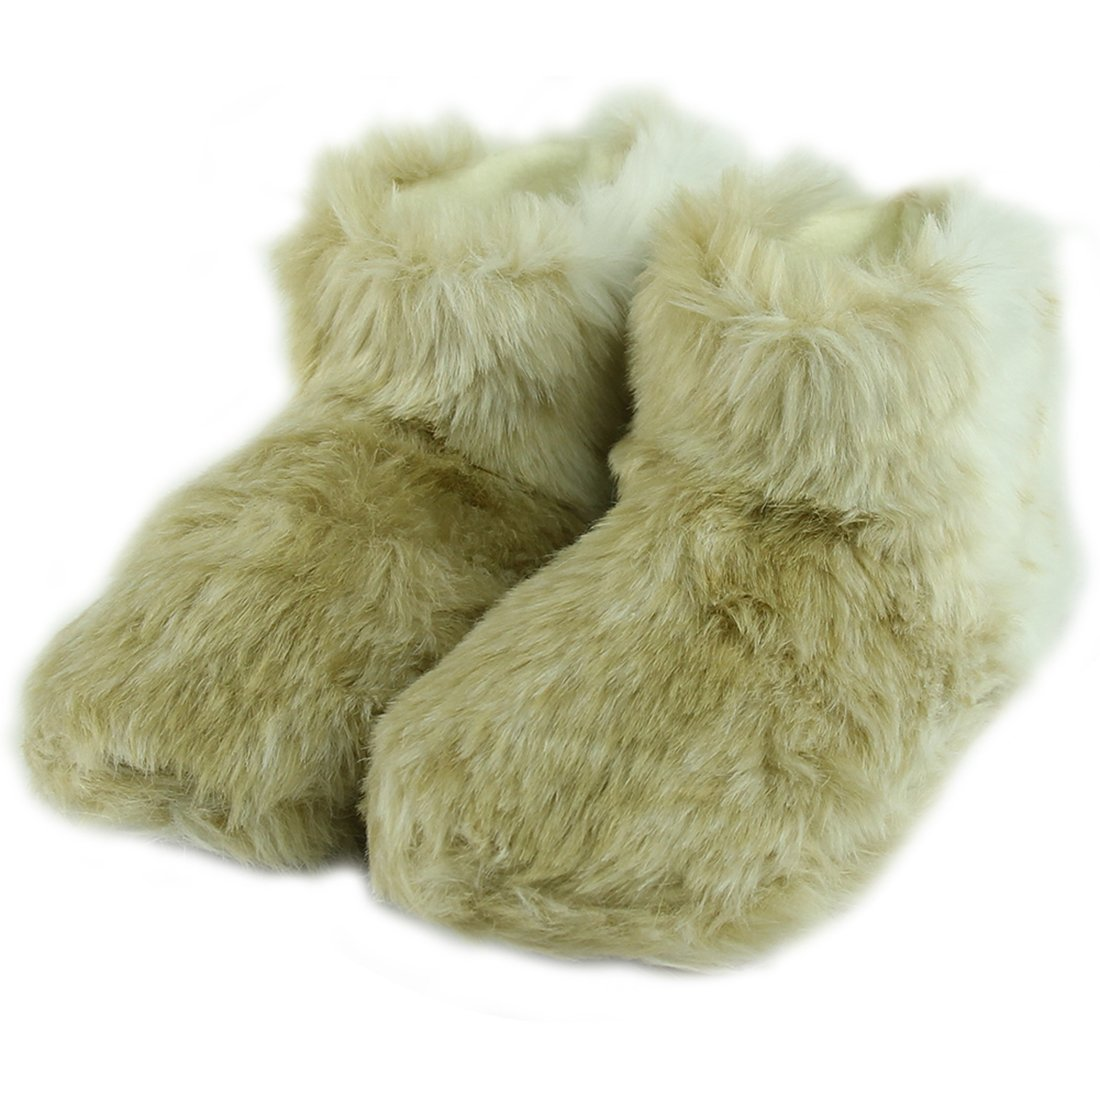 House Boot Slippers Forfoot Women's Warm Plush Soft Sole Indoor Slipper Beige Small